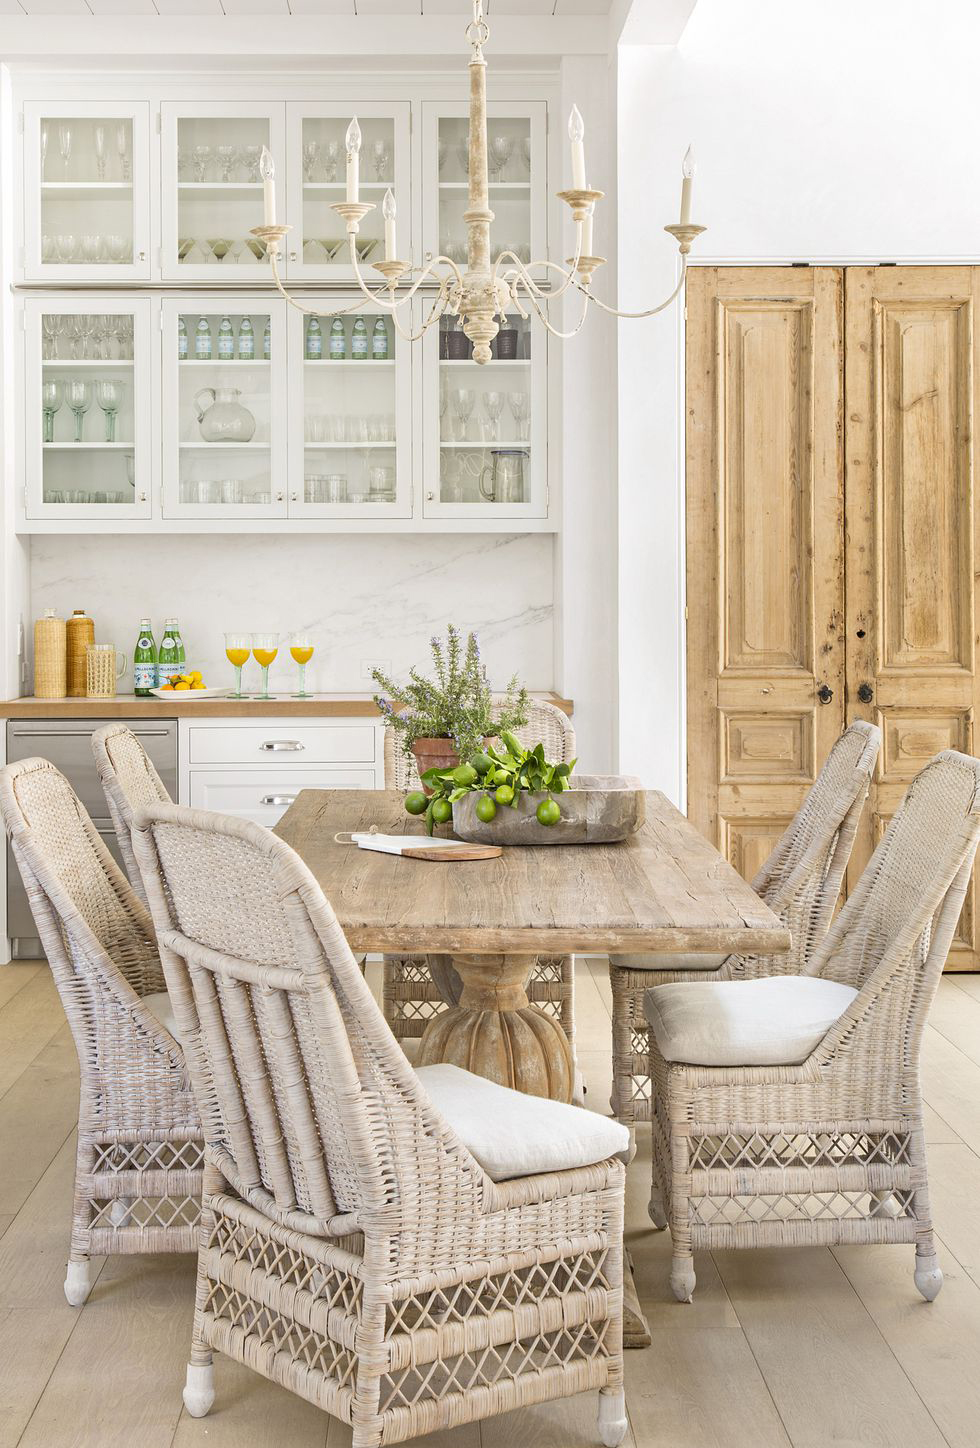 Farmhouse Decorating Ideas | How to Decorate a Farmhouse Style Home